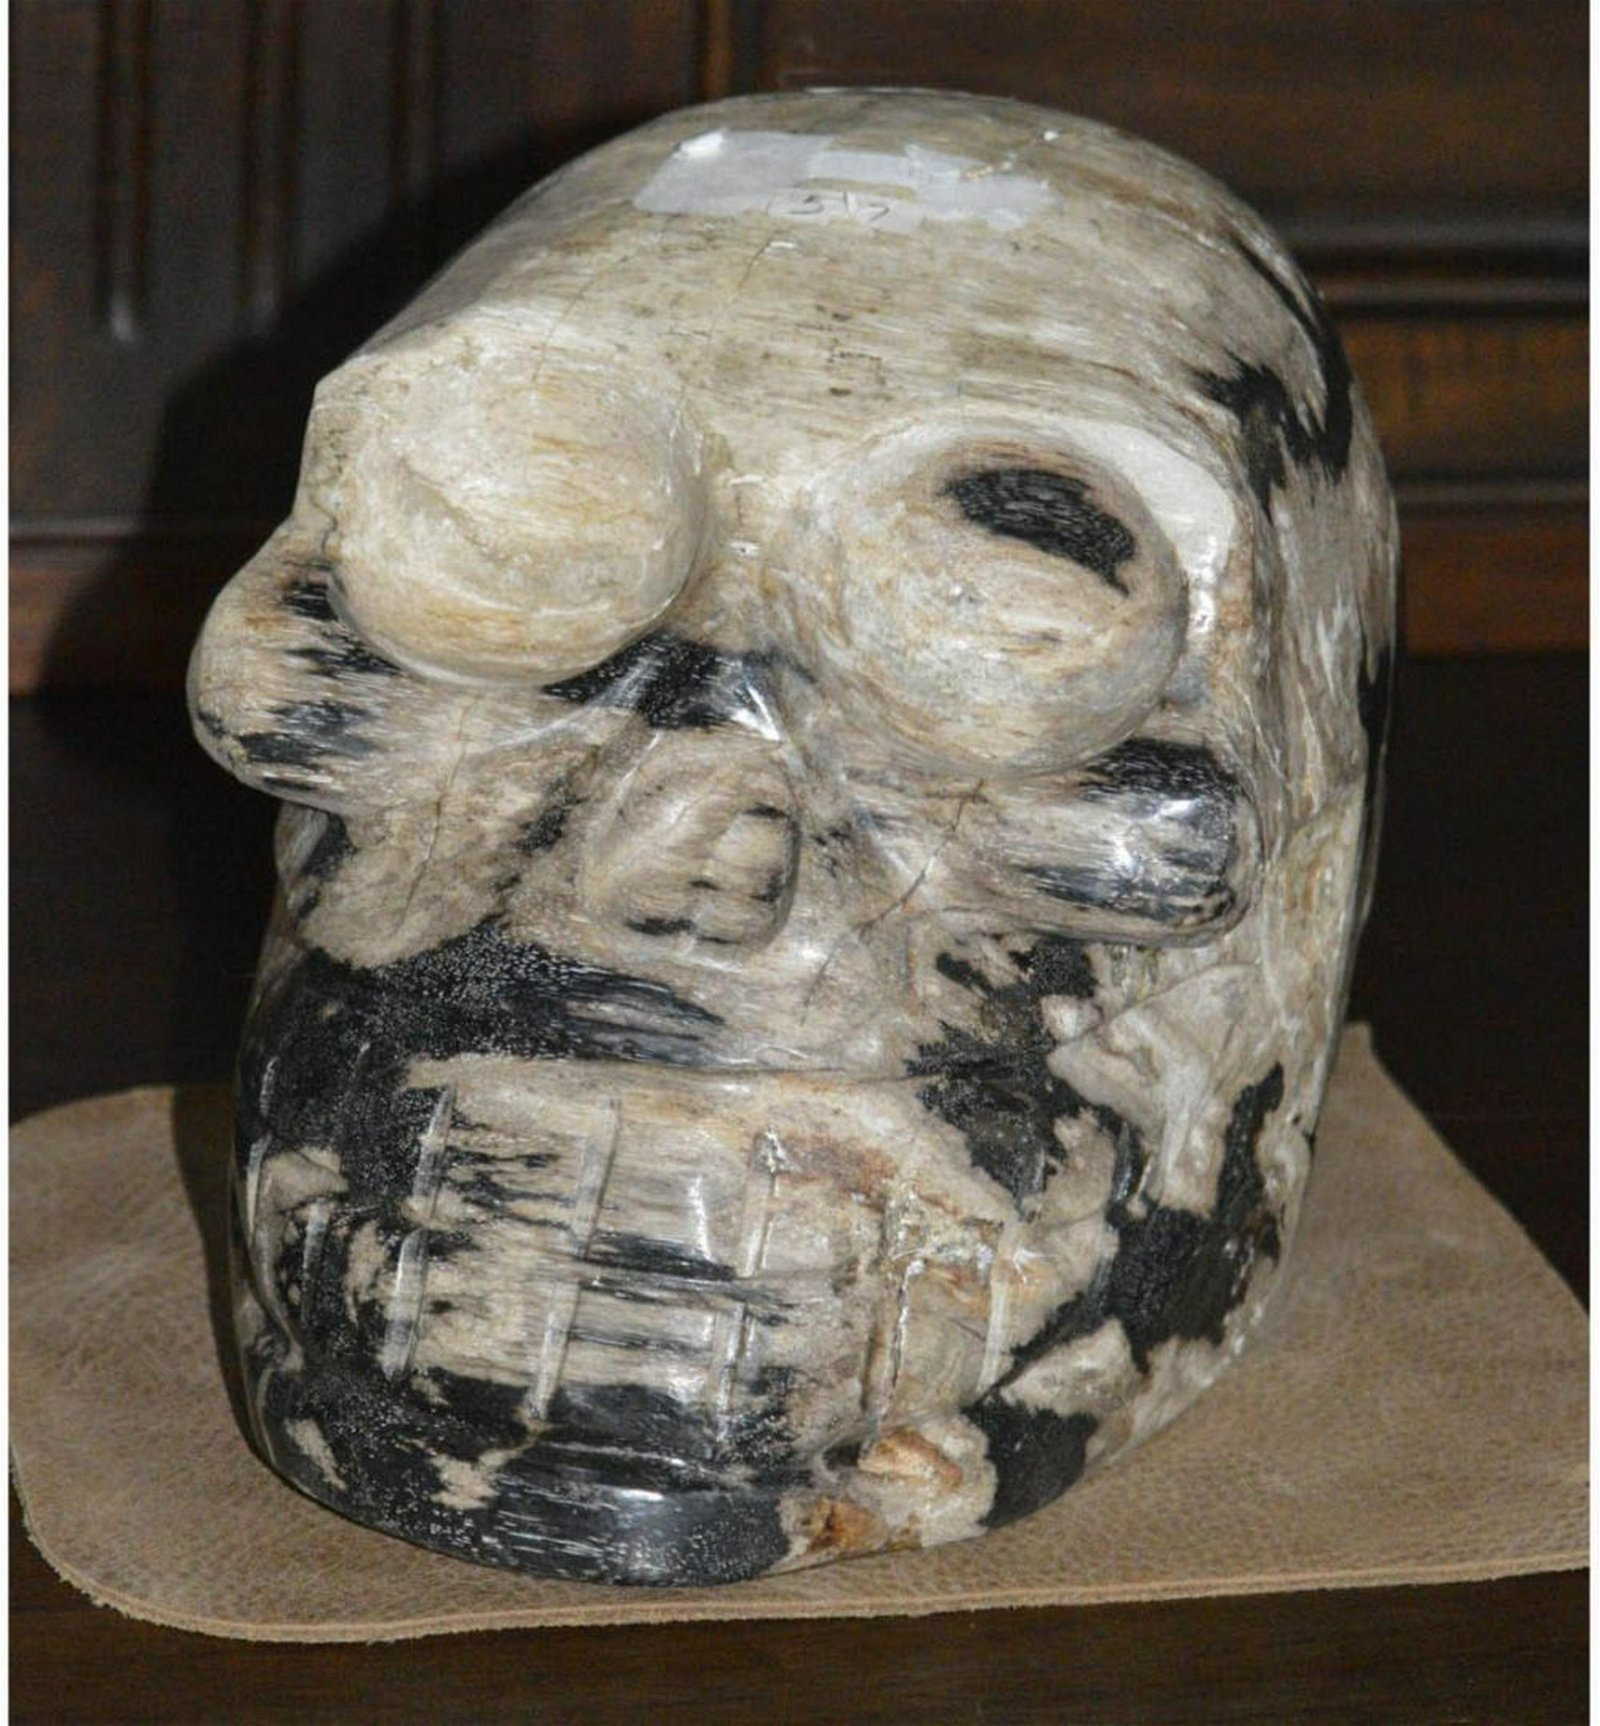 Sculpture in the form of a skull